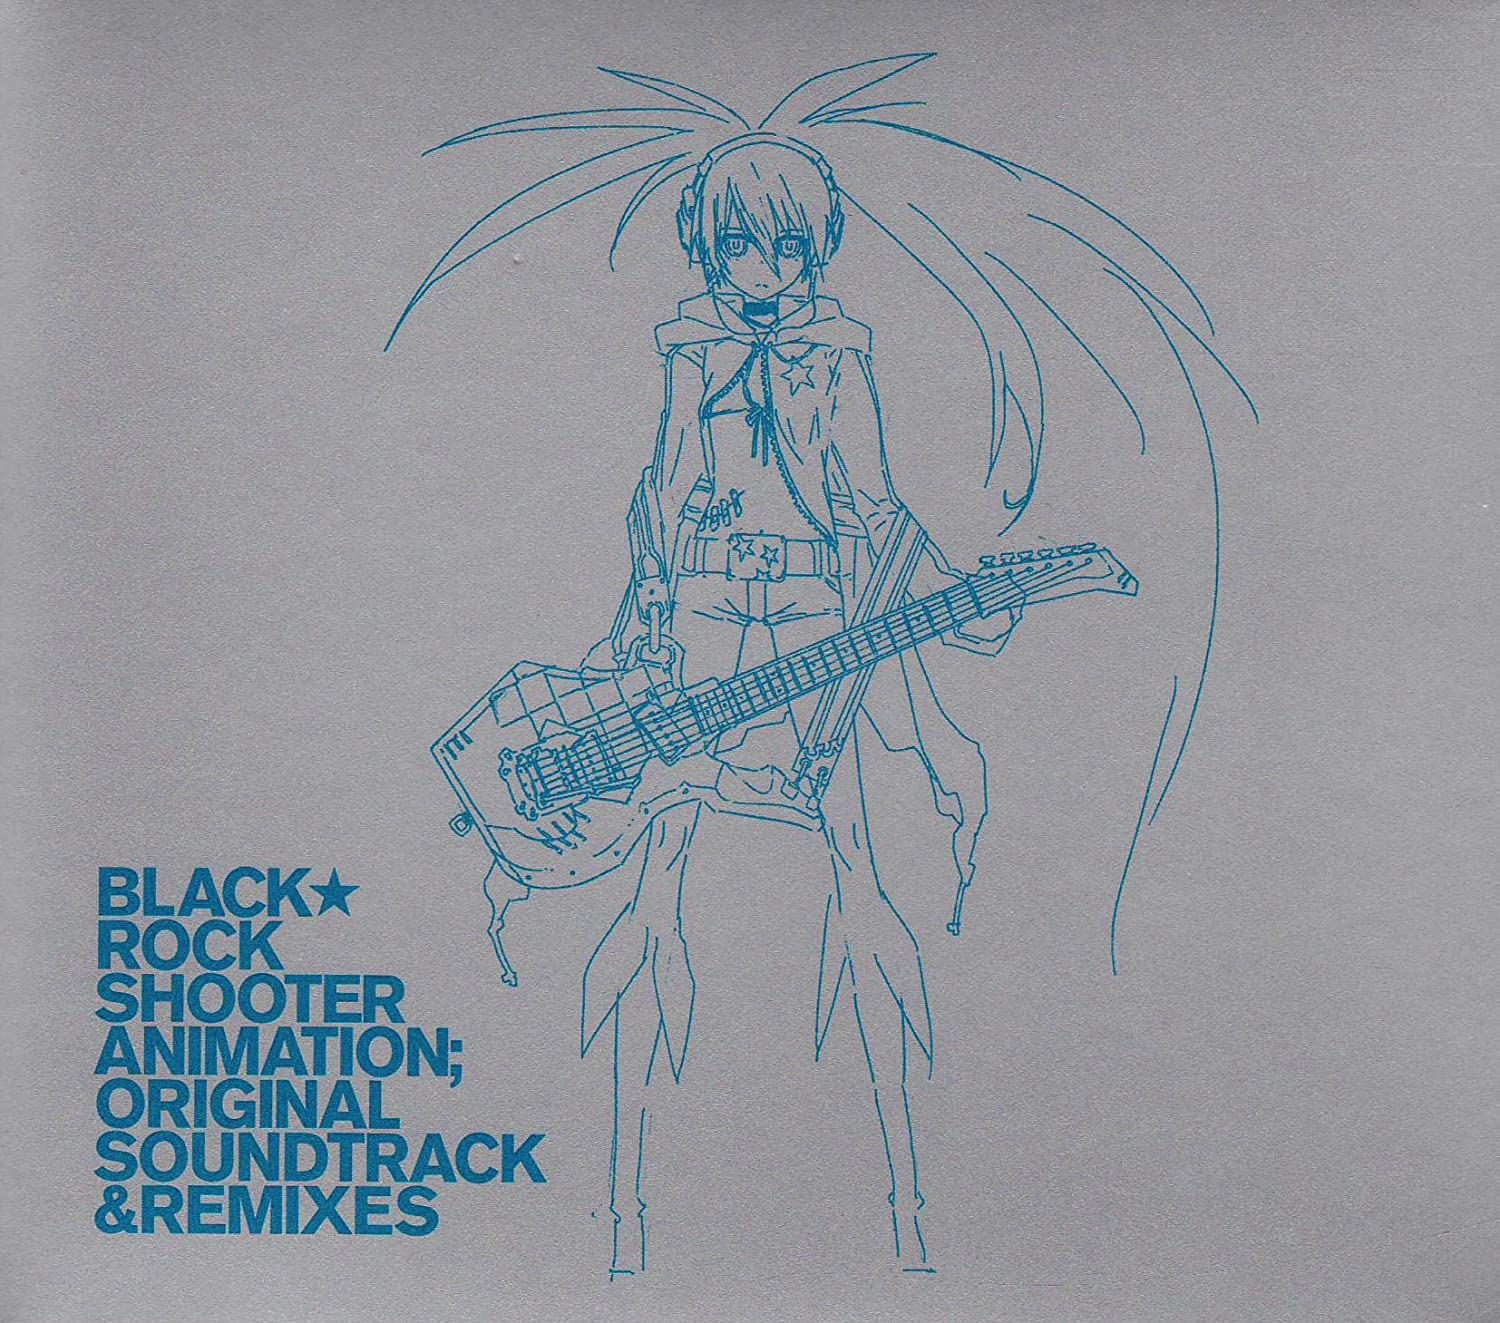 File:Black Rock Shooter Original Soundtrack.jpg